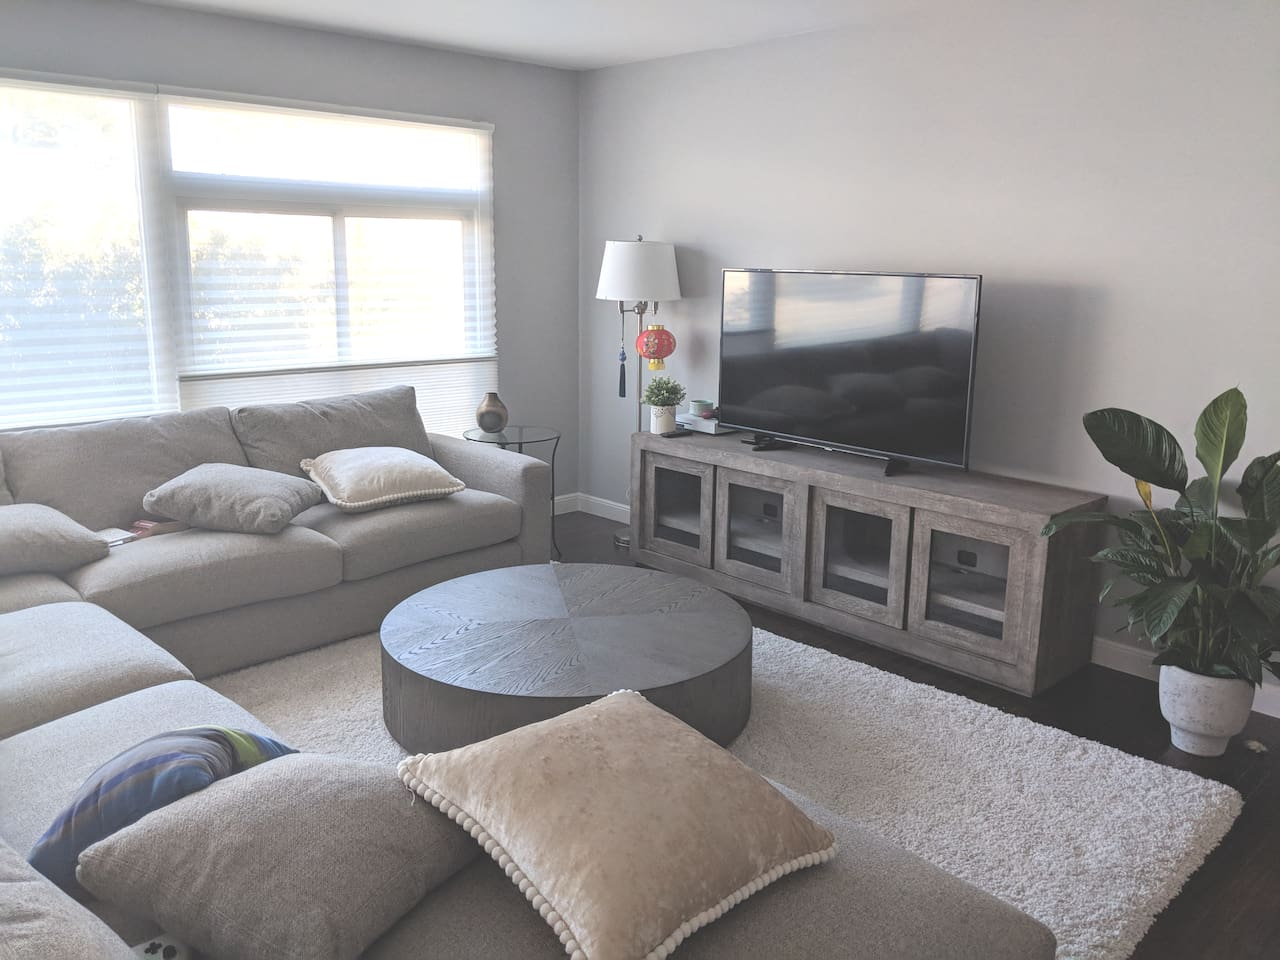 Private south-facing bedroom with queen bed in Noe Valley house with furnished livingroom.